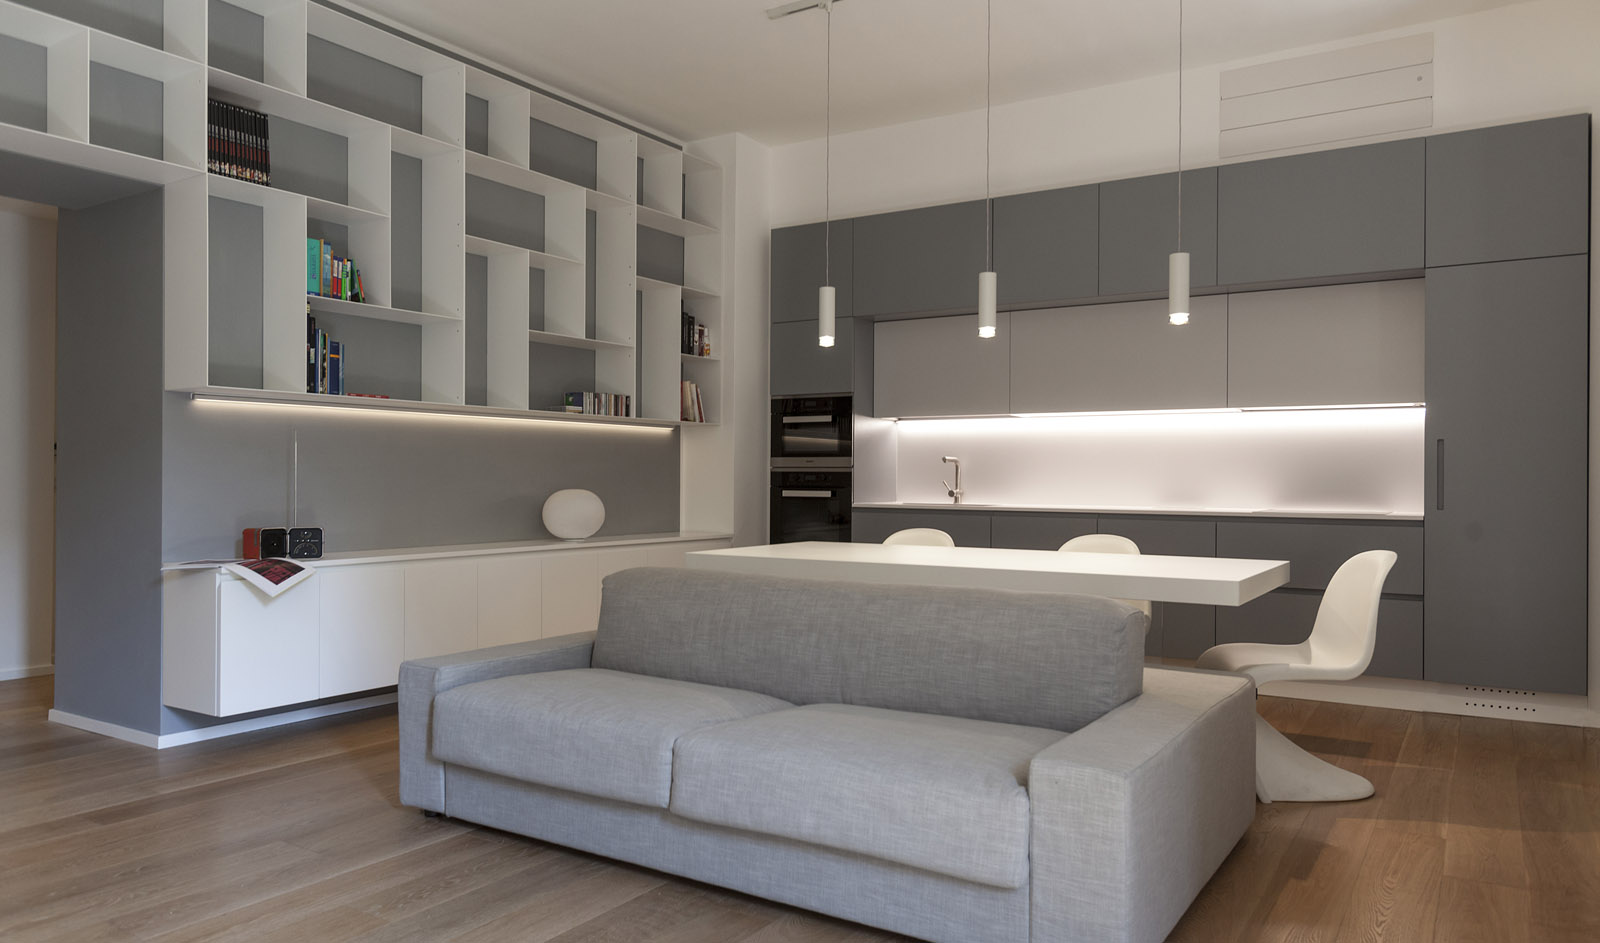 Casa di Mariella, Rome, Italy<br />Renovation and Interior Design